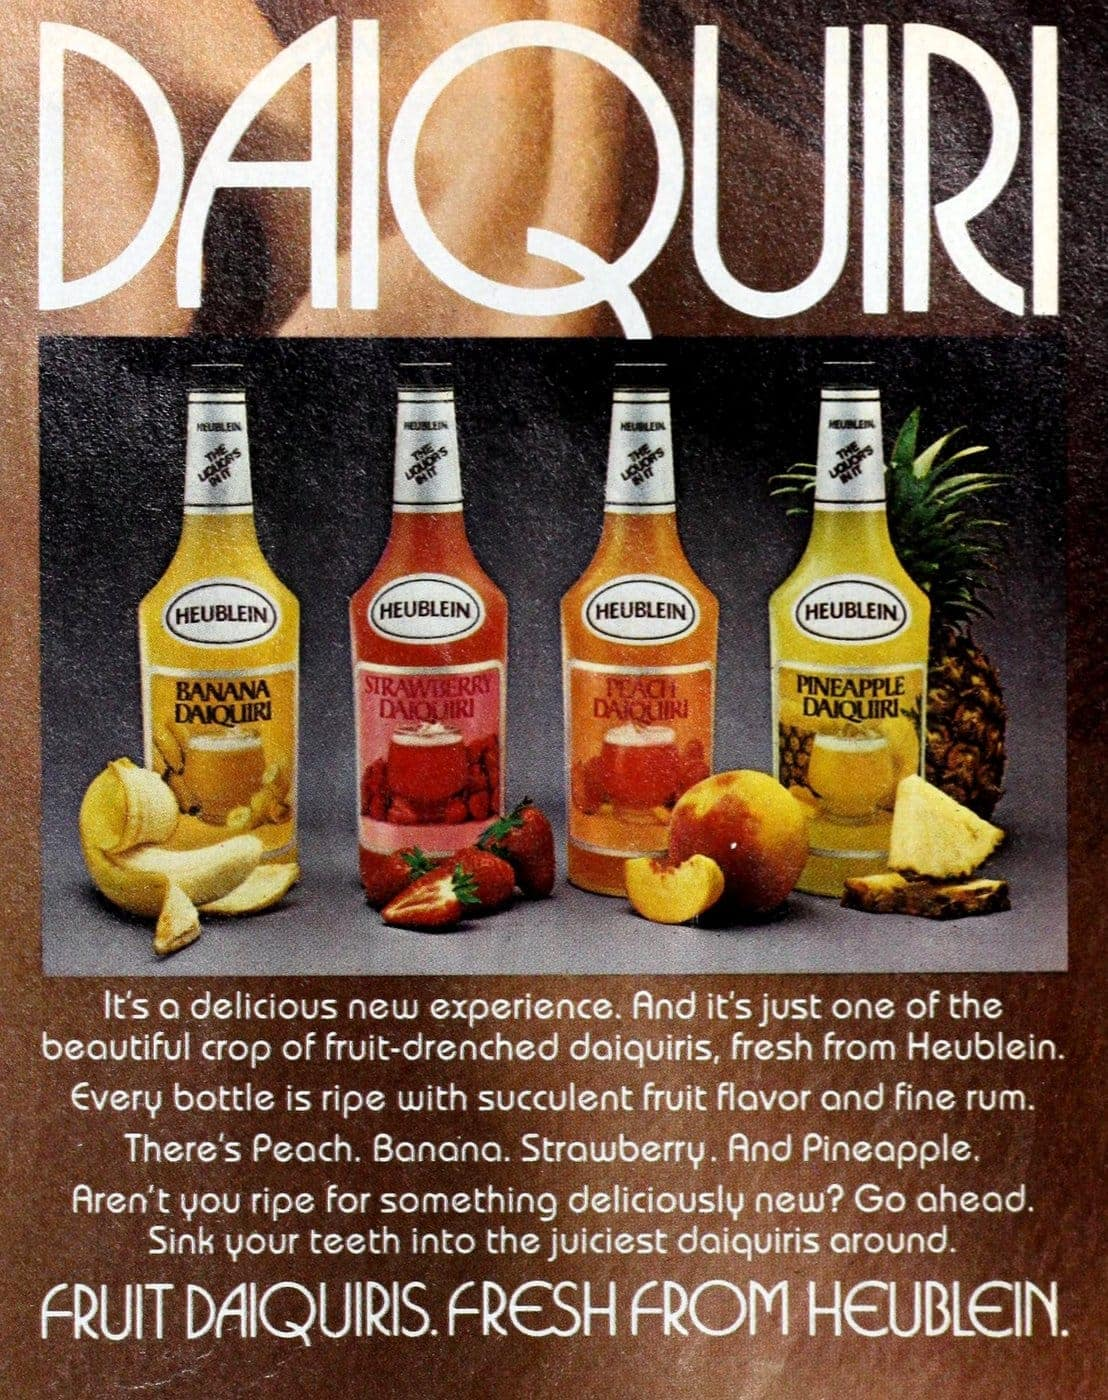 Vintage 70s Heublein fruit daiquiri mix (1977)